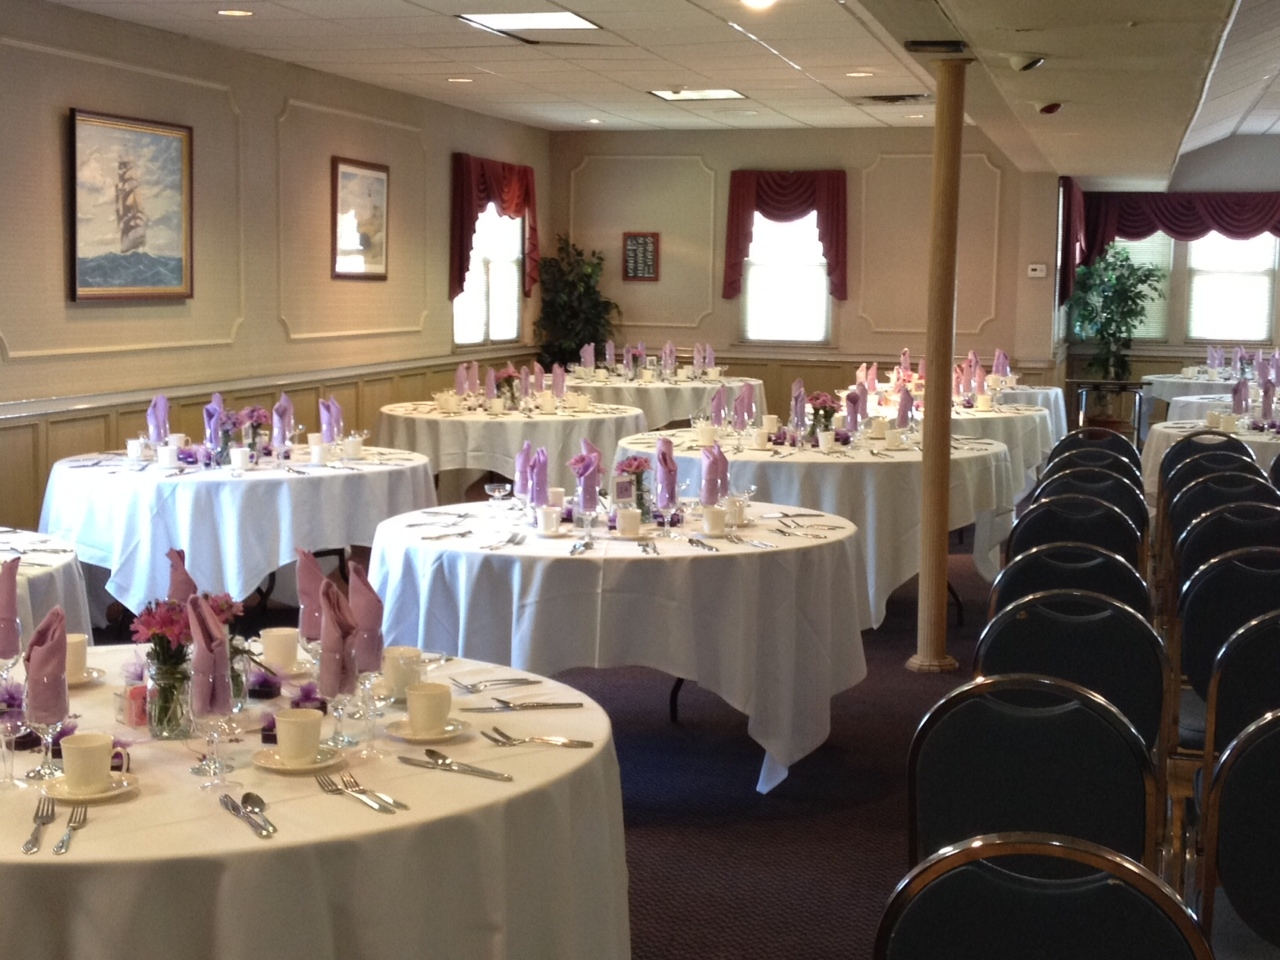 Wedding table set up. Renting a Catering Hall & Delicious Moments Caterers Blog | Delicious Moments Caterers